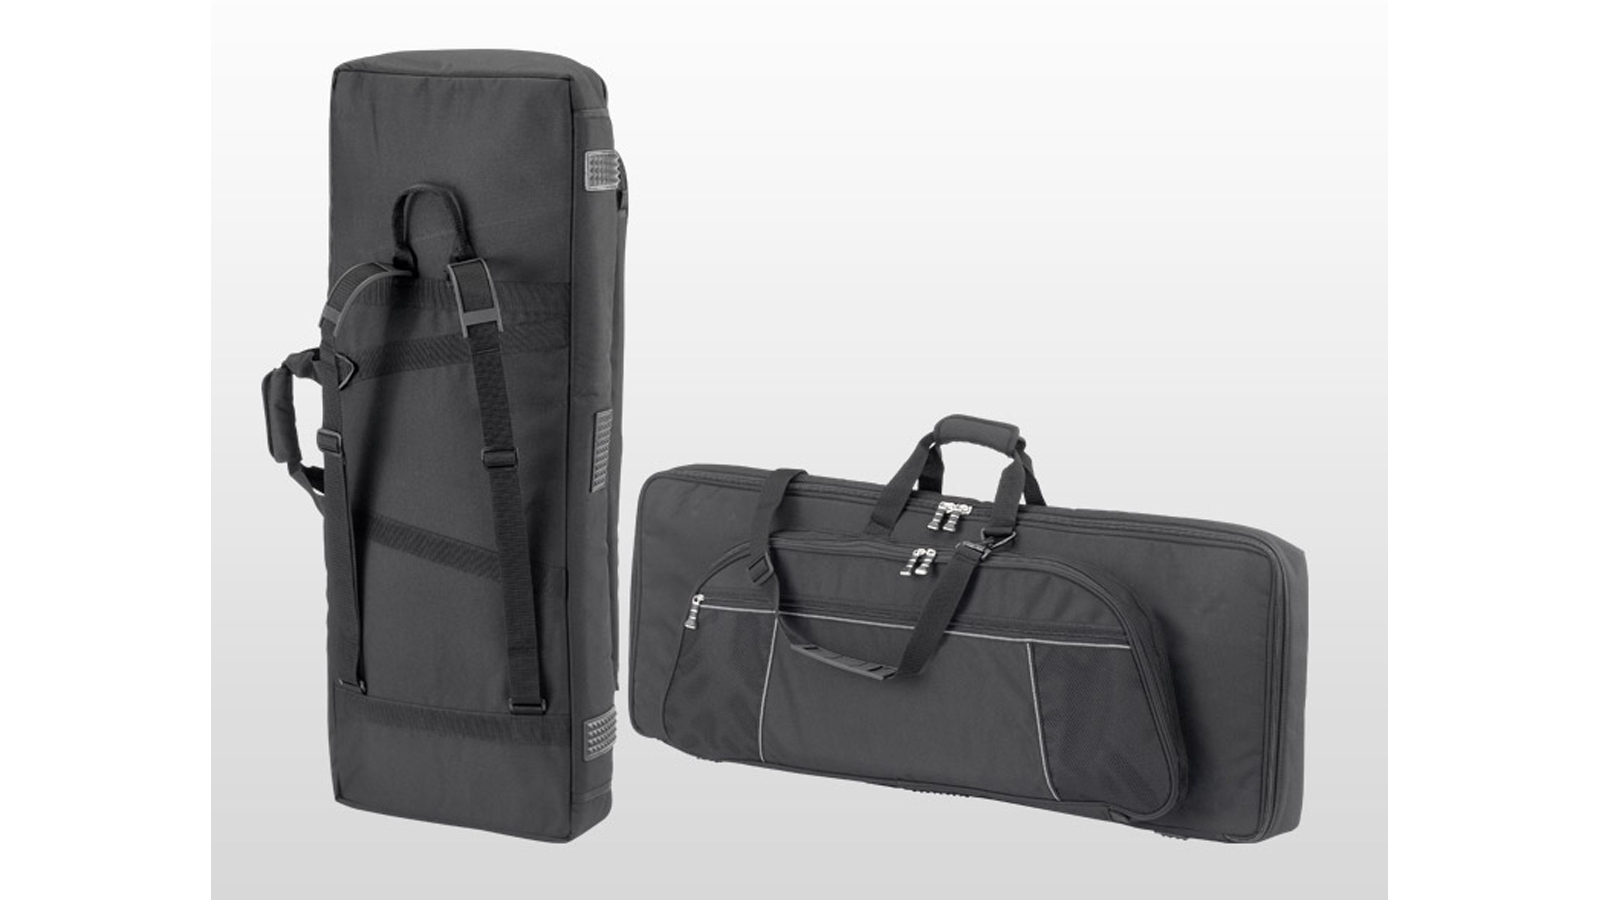 Soundwear Keyboard Bag Protector 97 x 40 x 15 cm